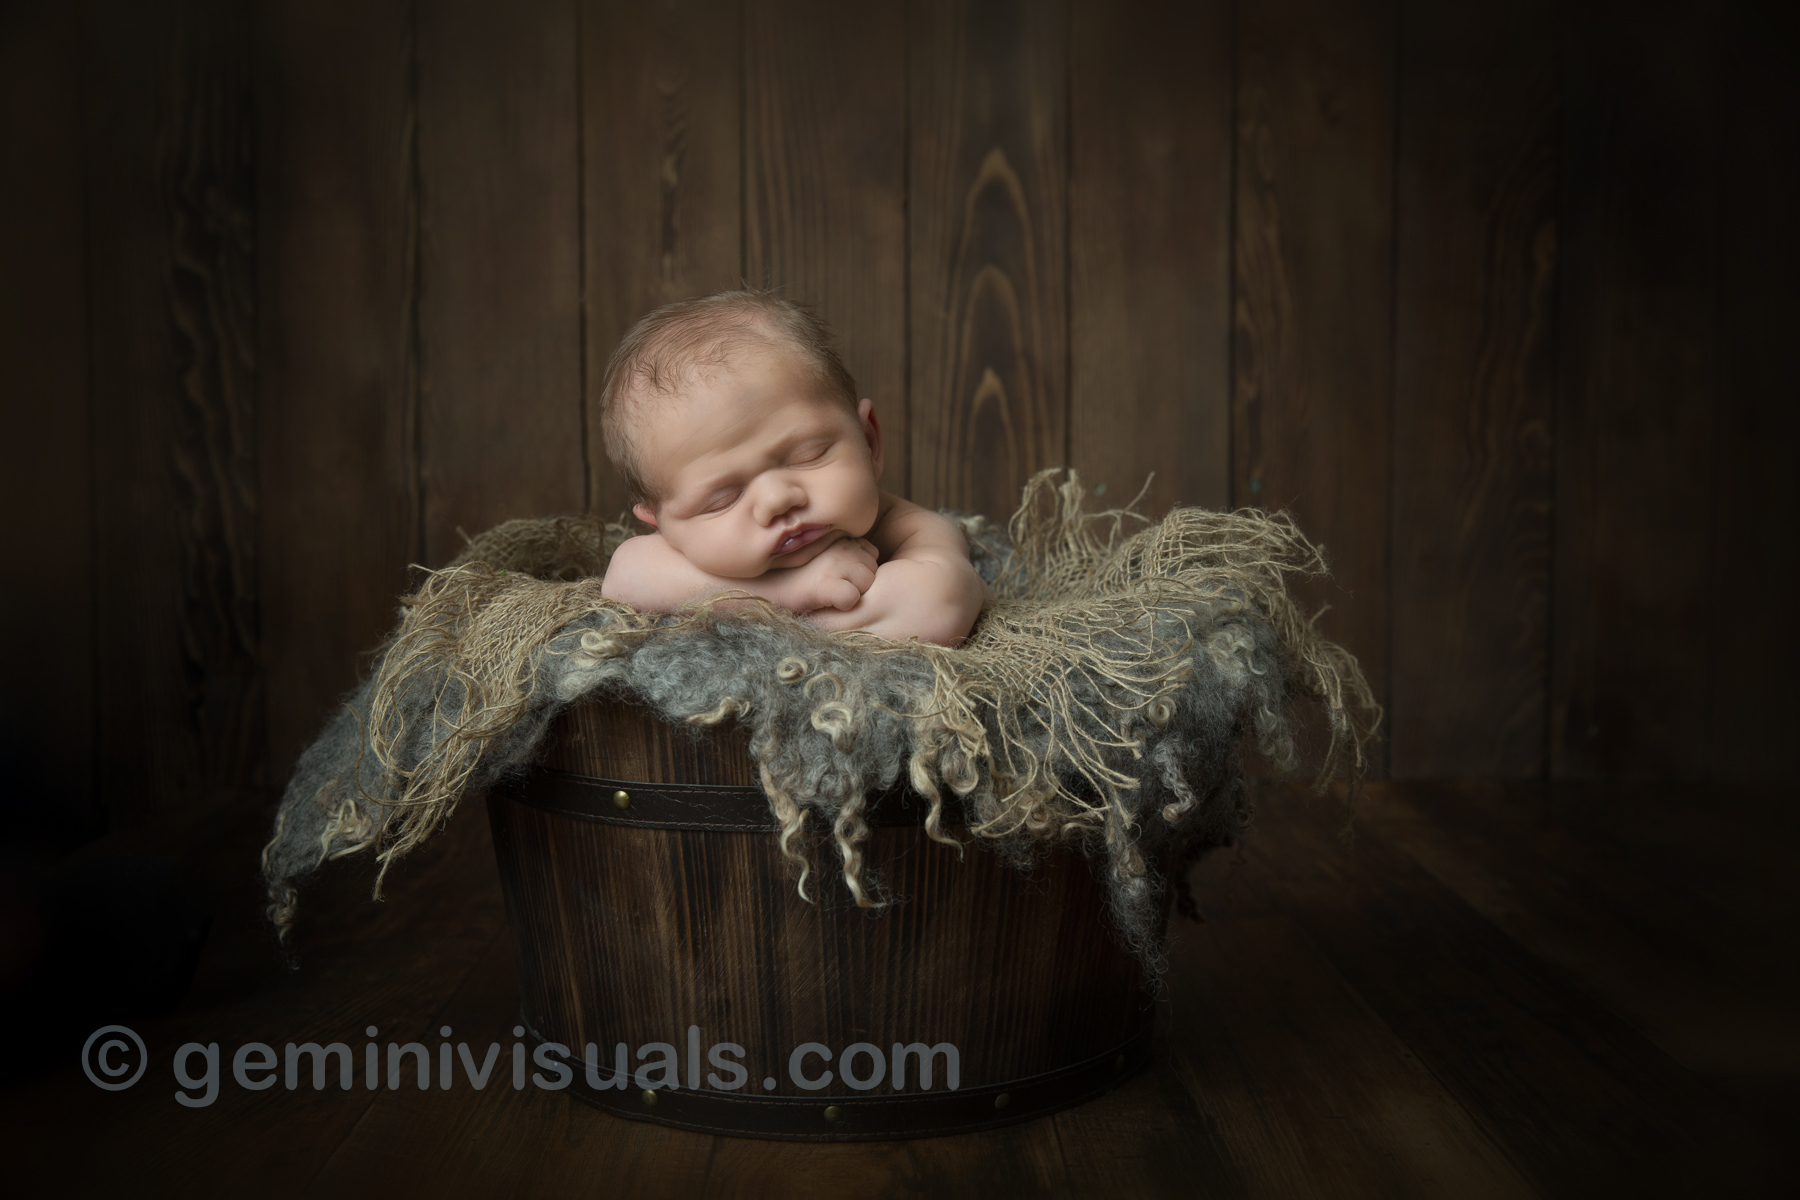 Surrey newborn photos, newborns, photography, Gemini Visuals